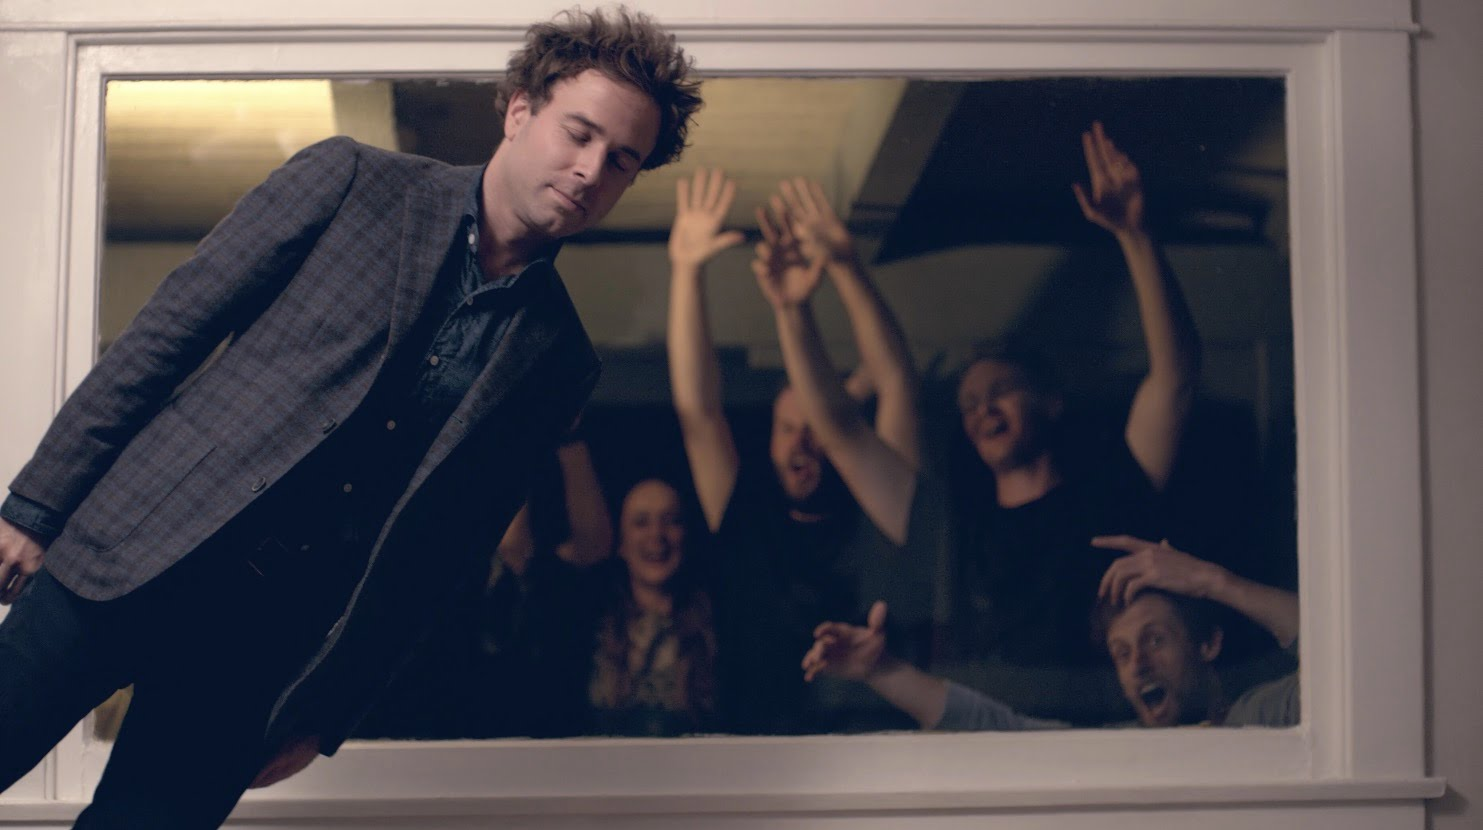 State Theatre of Ithaca to host Dawes